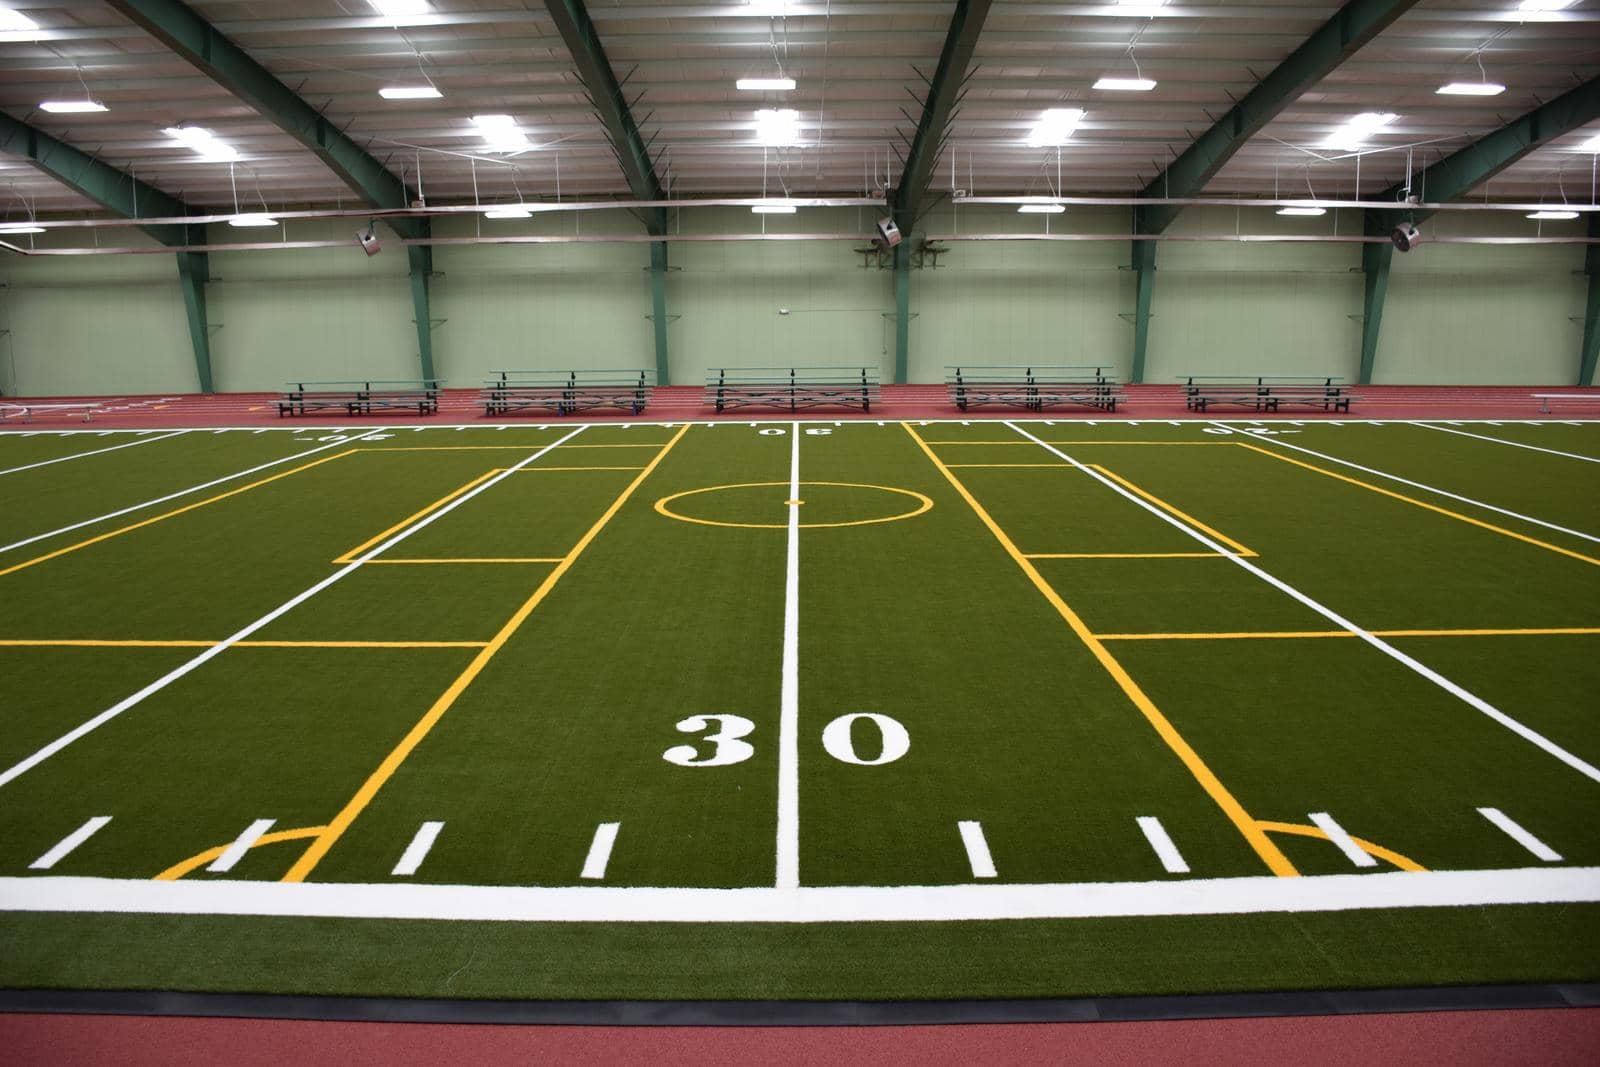 indoor sports field with artificial turf